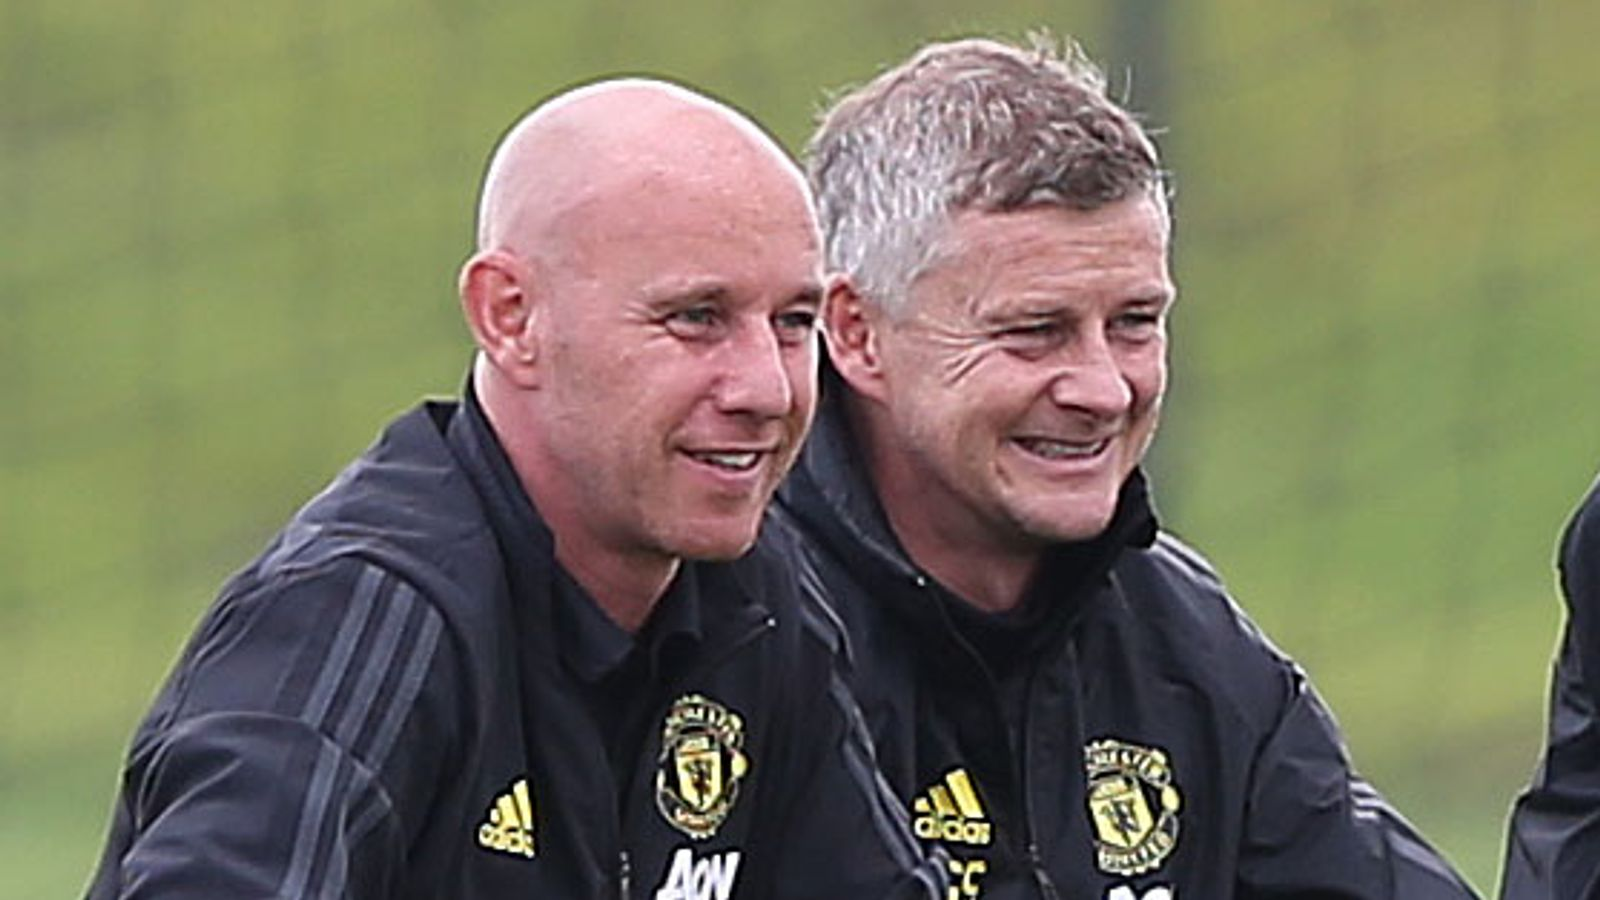 Nicky Butt Says Manchester United S Academy Will Be A Success Again When First Team Win Titles Football News The Union Journal